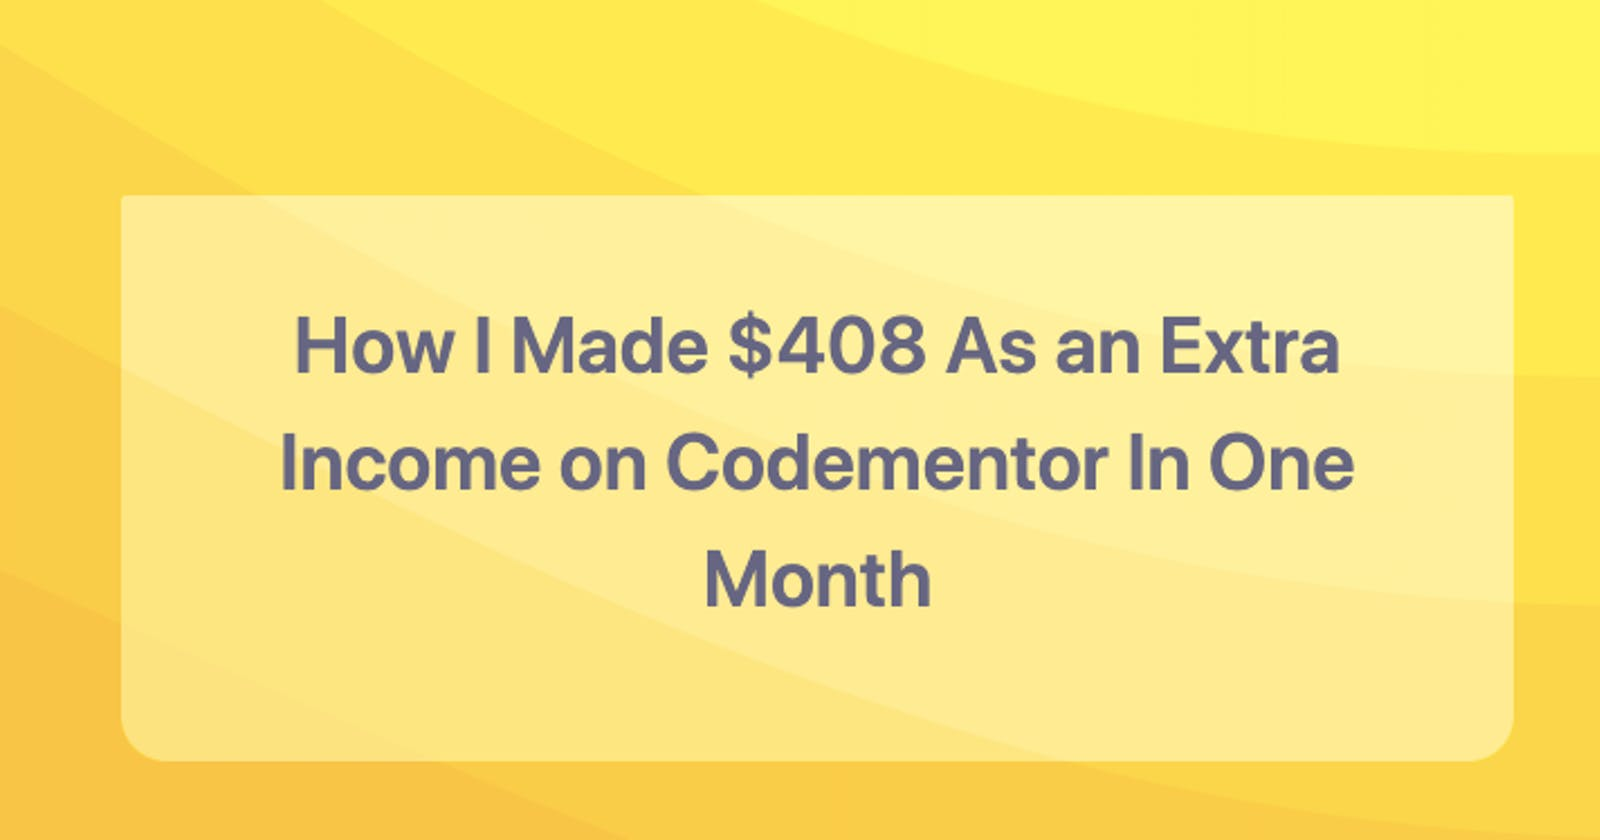 How I Made $408 As an Extra Income on Codementor In One Month